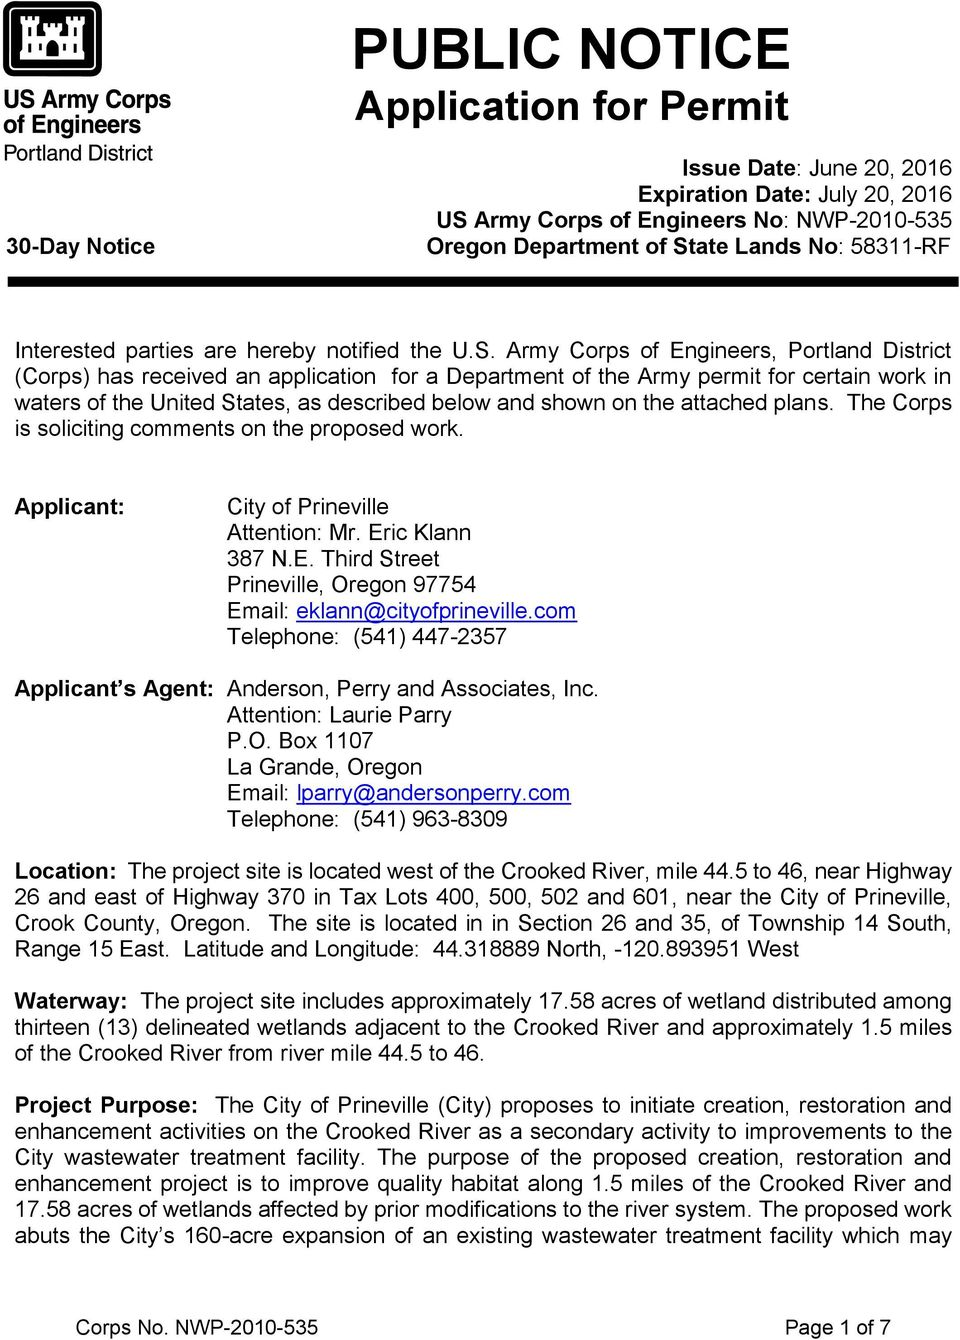 Army Corps of Engineers, Portland District (Corps) has received an application for a Department of the Army permit for certain work in waters of the United States, as described below and shown on the